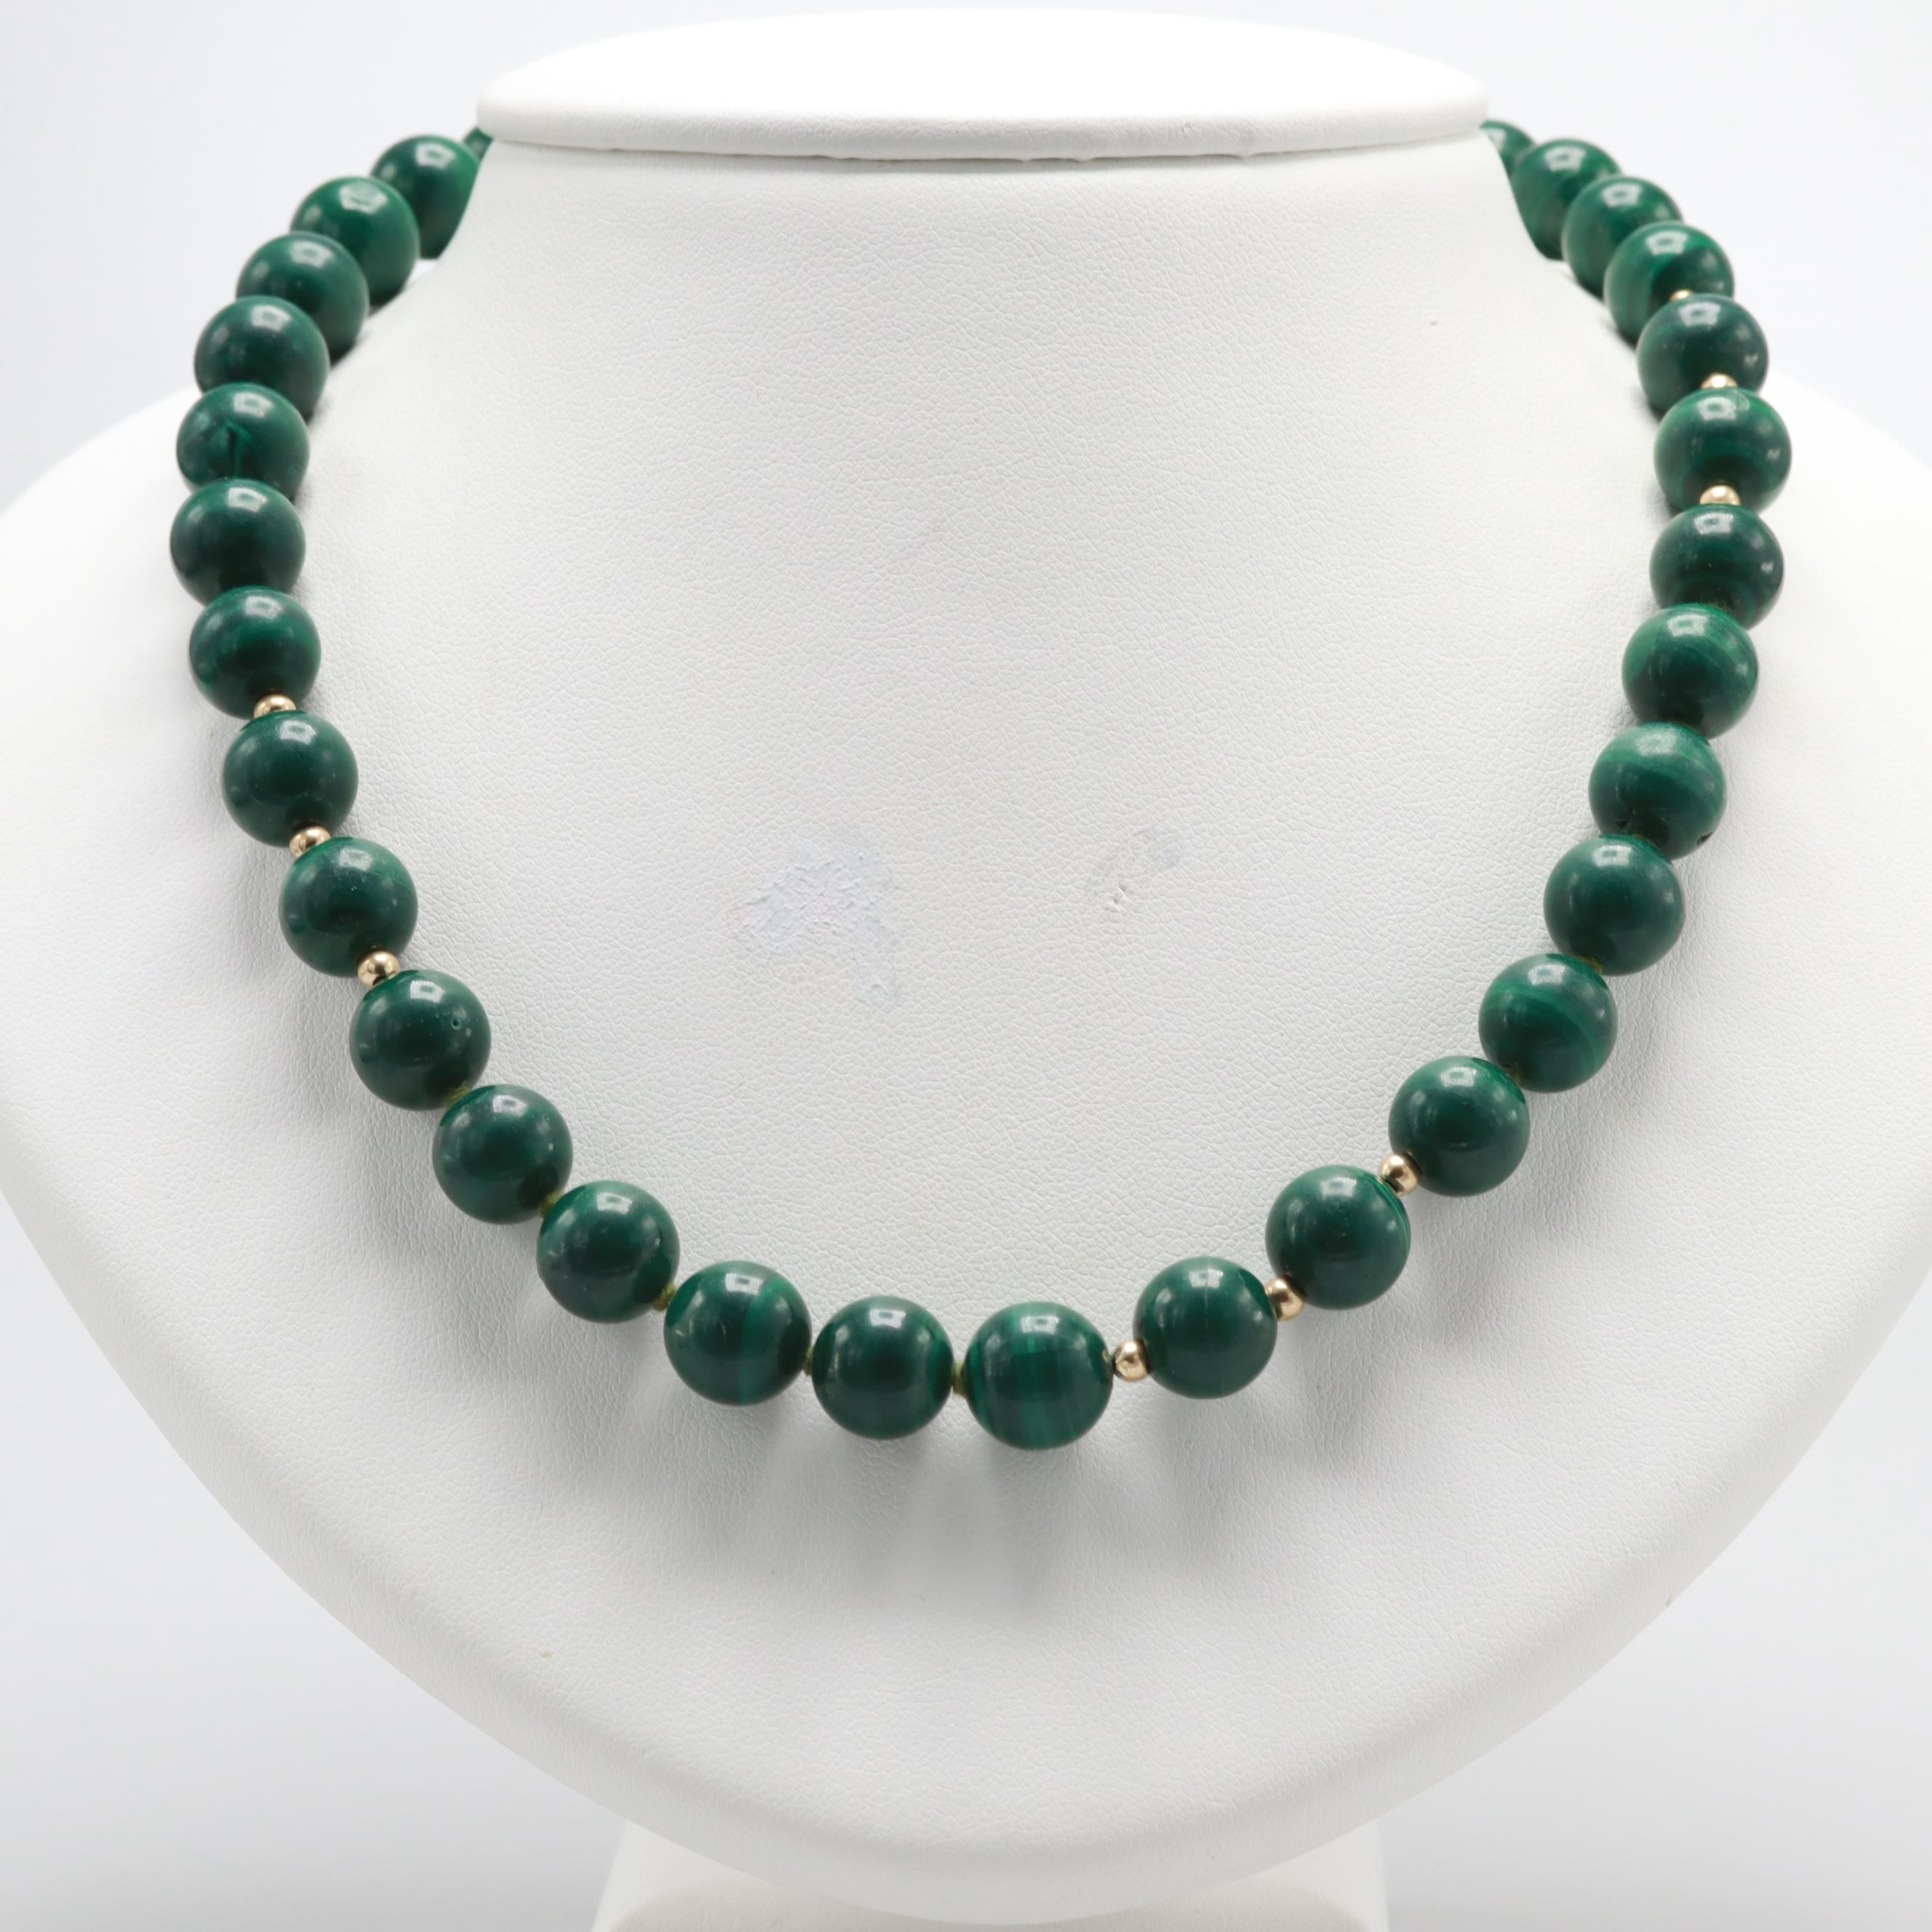 14K Yellow Gold Malachite Hand-Knotted Beaded Necklace